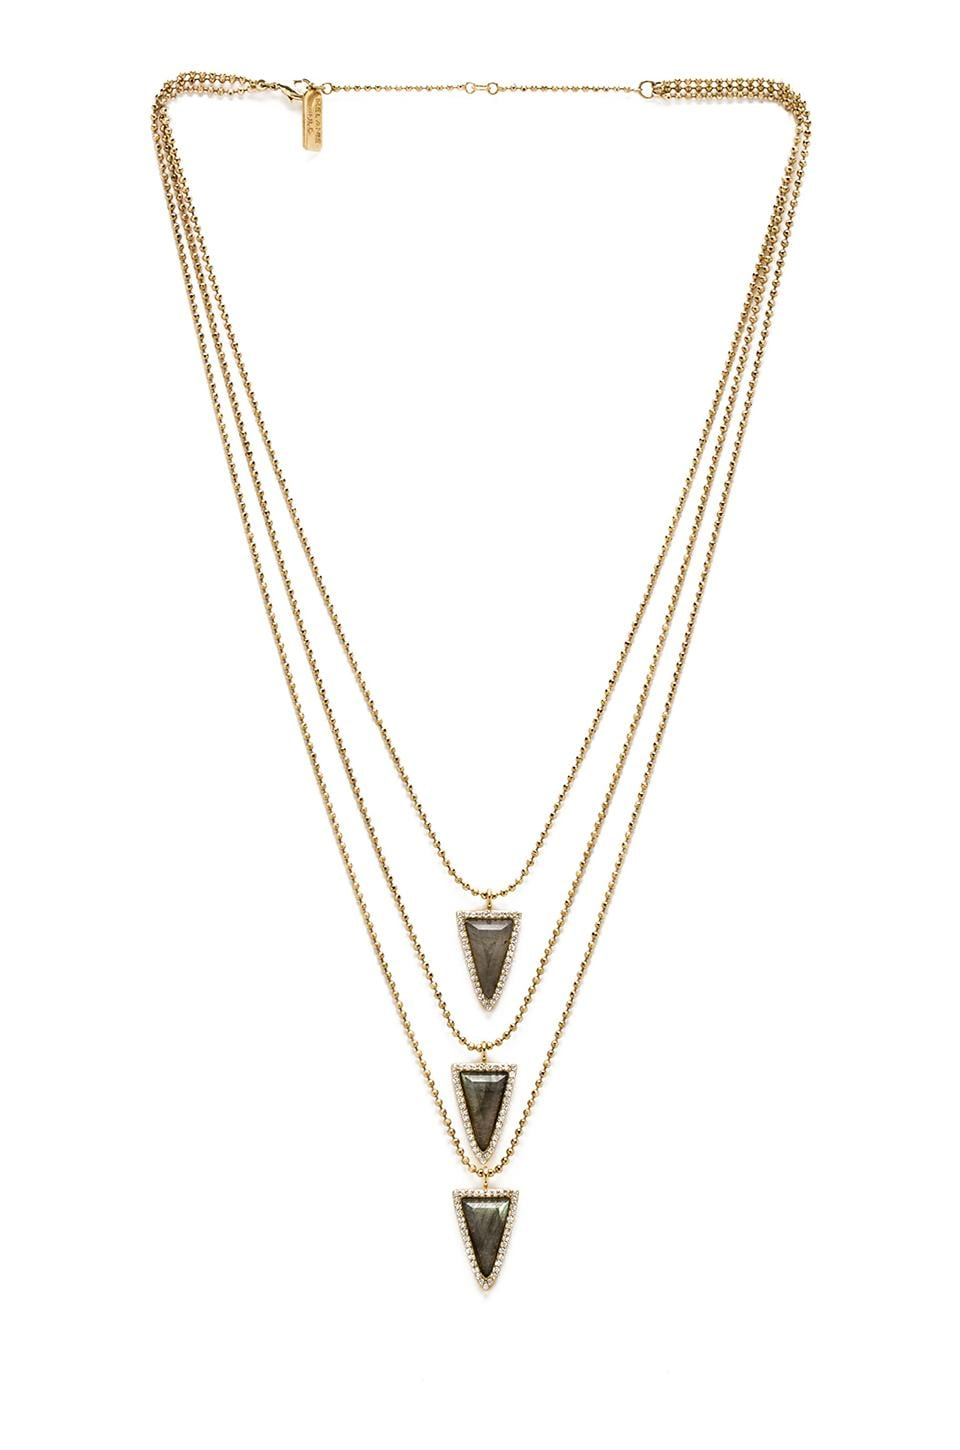 Melanie Auld 3 Tier Pave Triangle Necklace in Labradorite